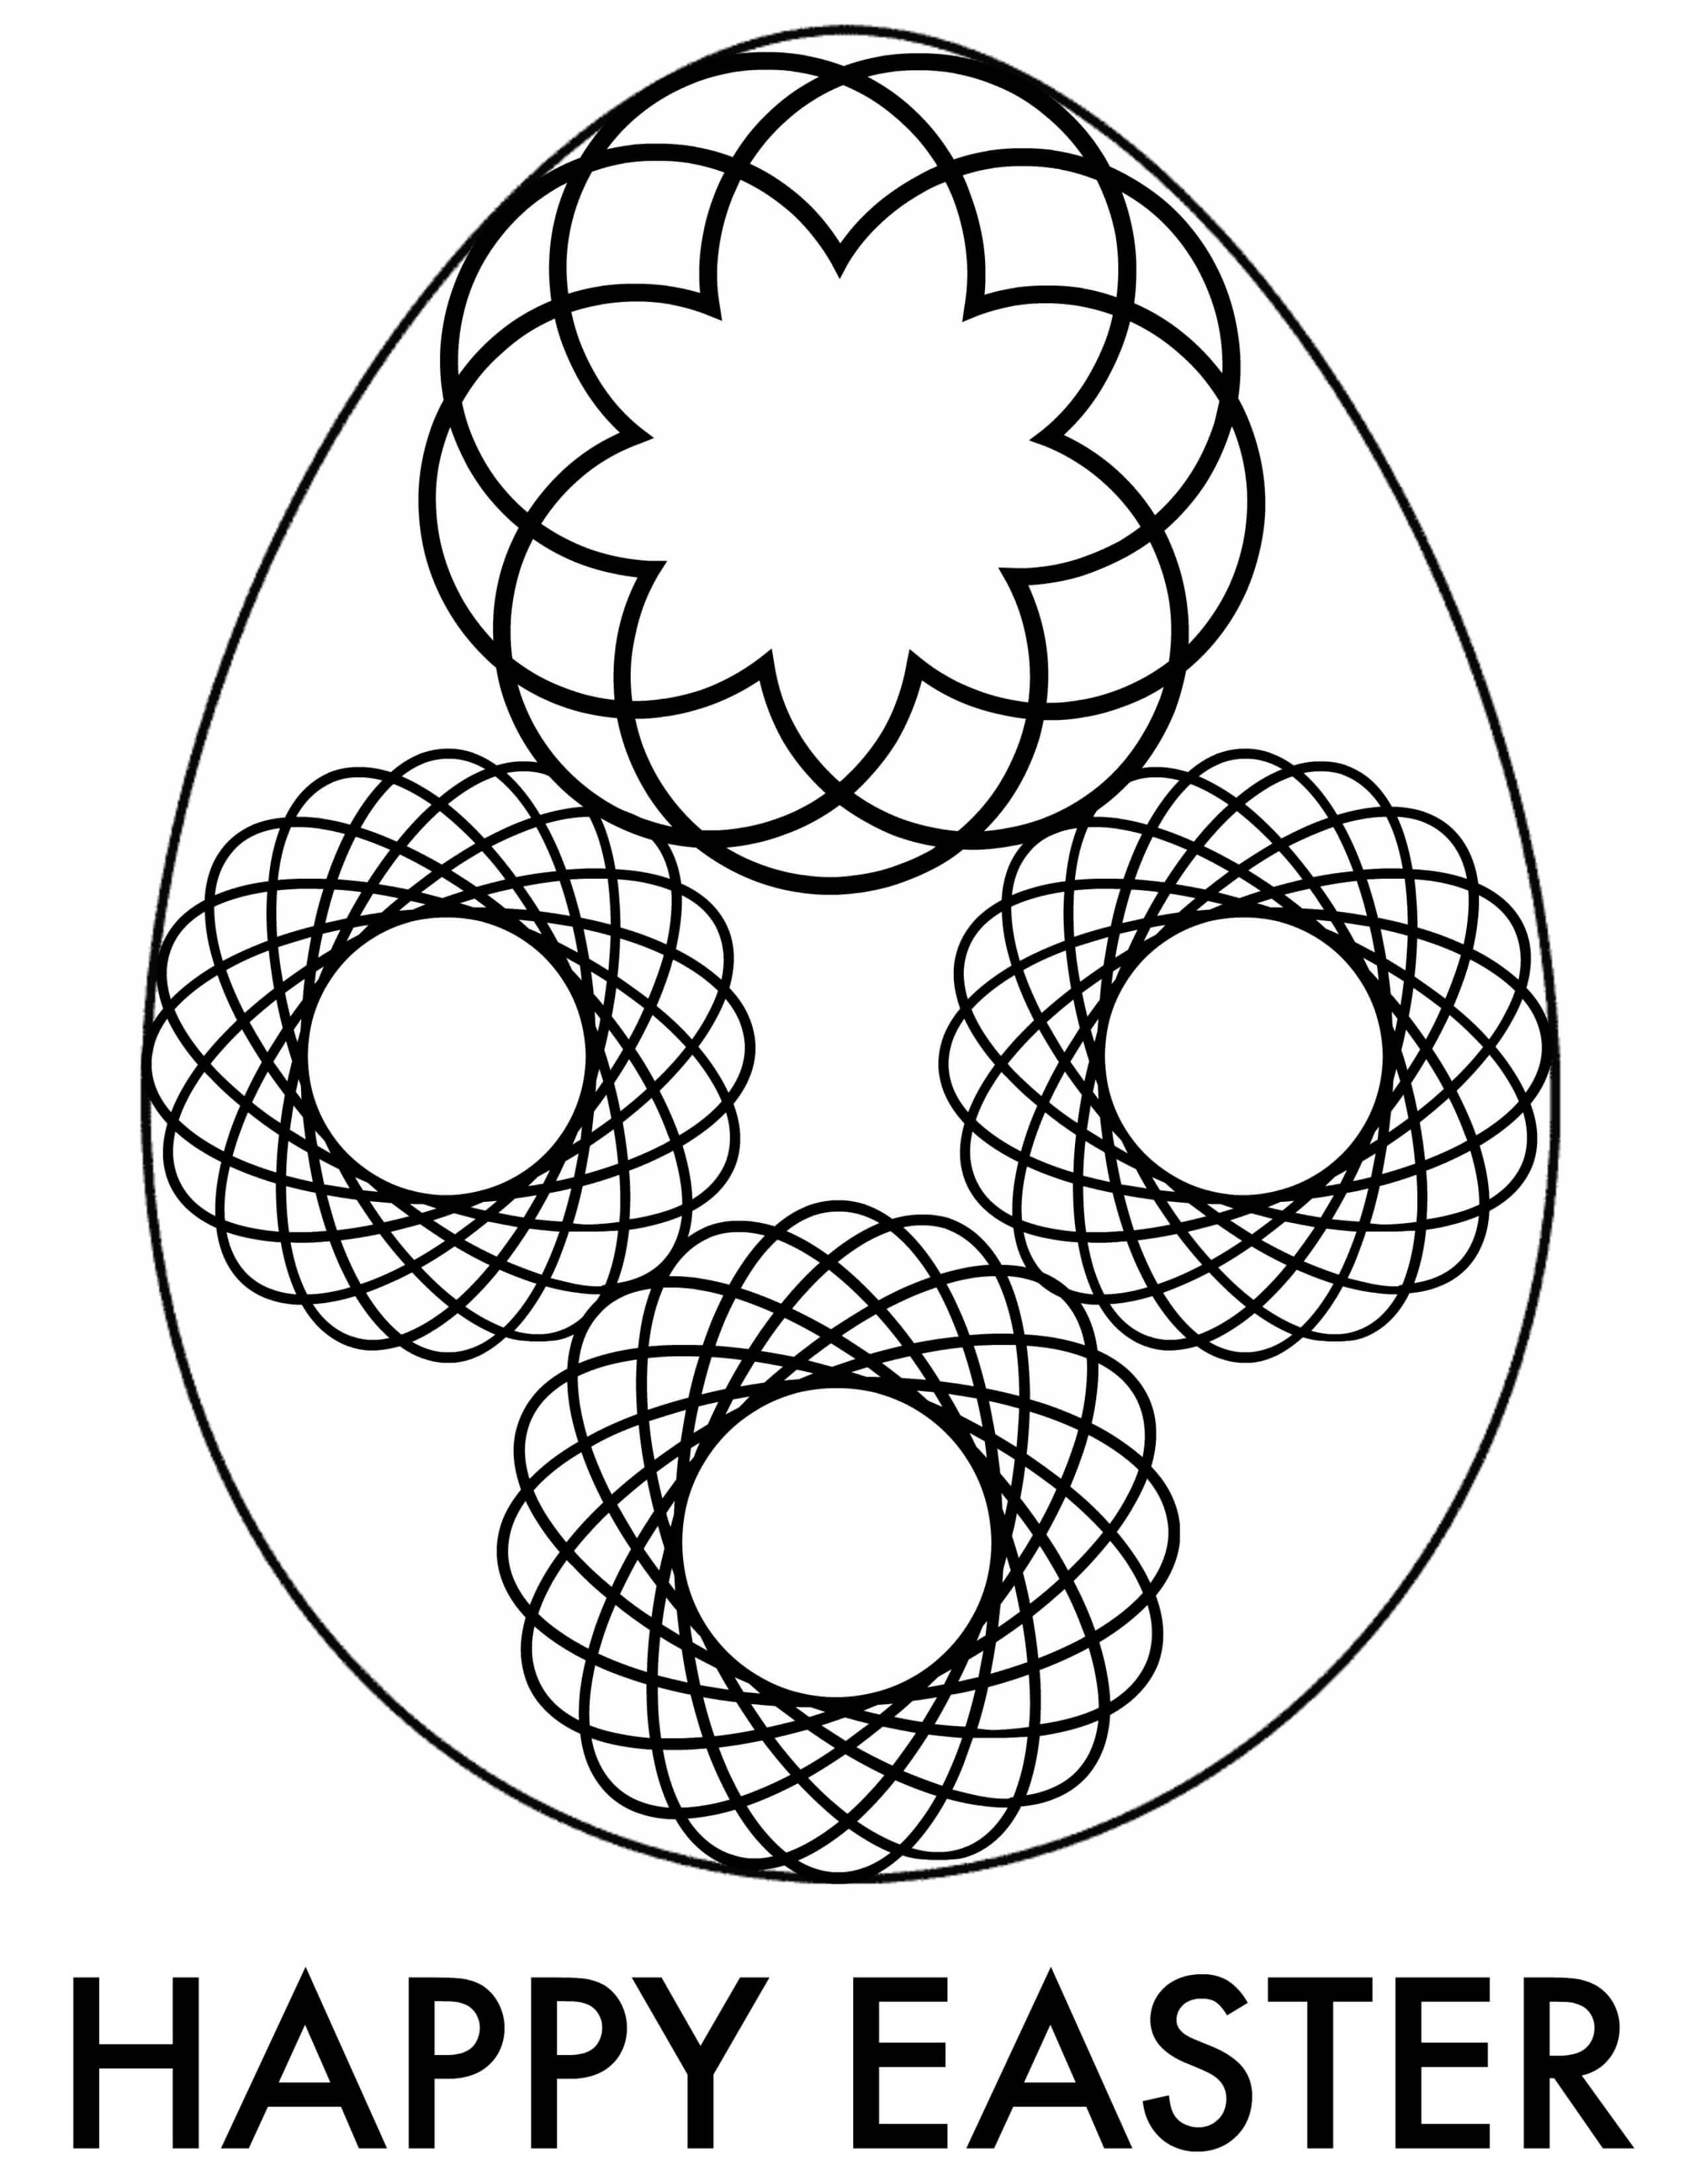 coloring pages of easter eggs easter egg printable colouring pages hubpages pages coloring easter of eggs